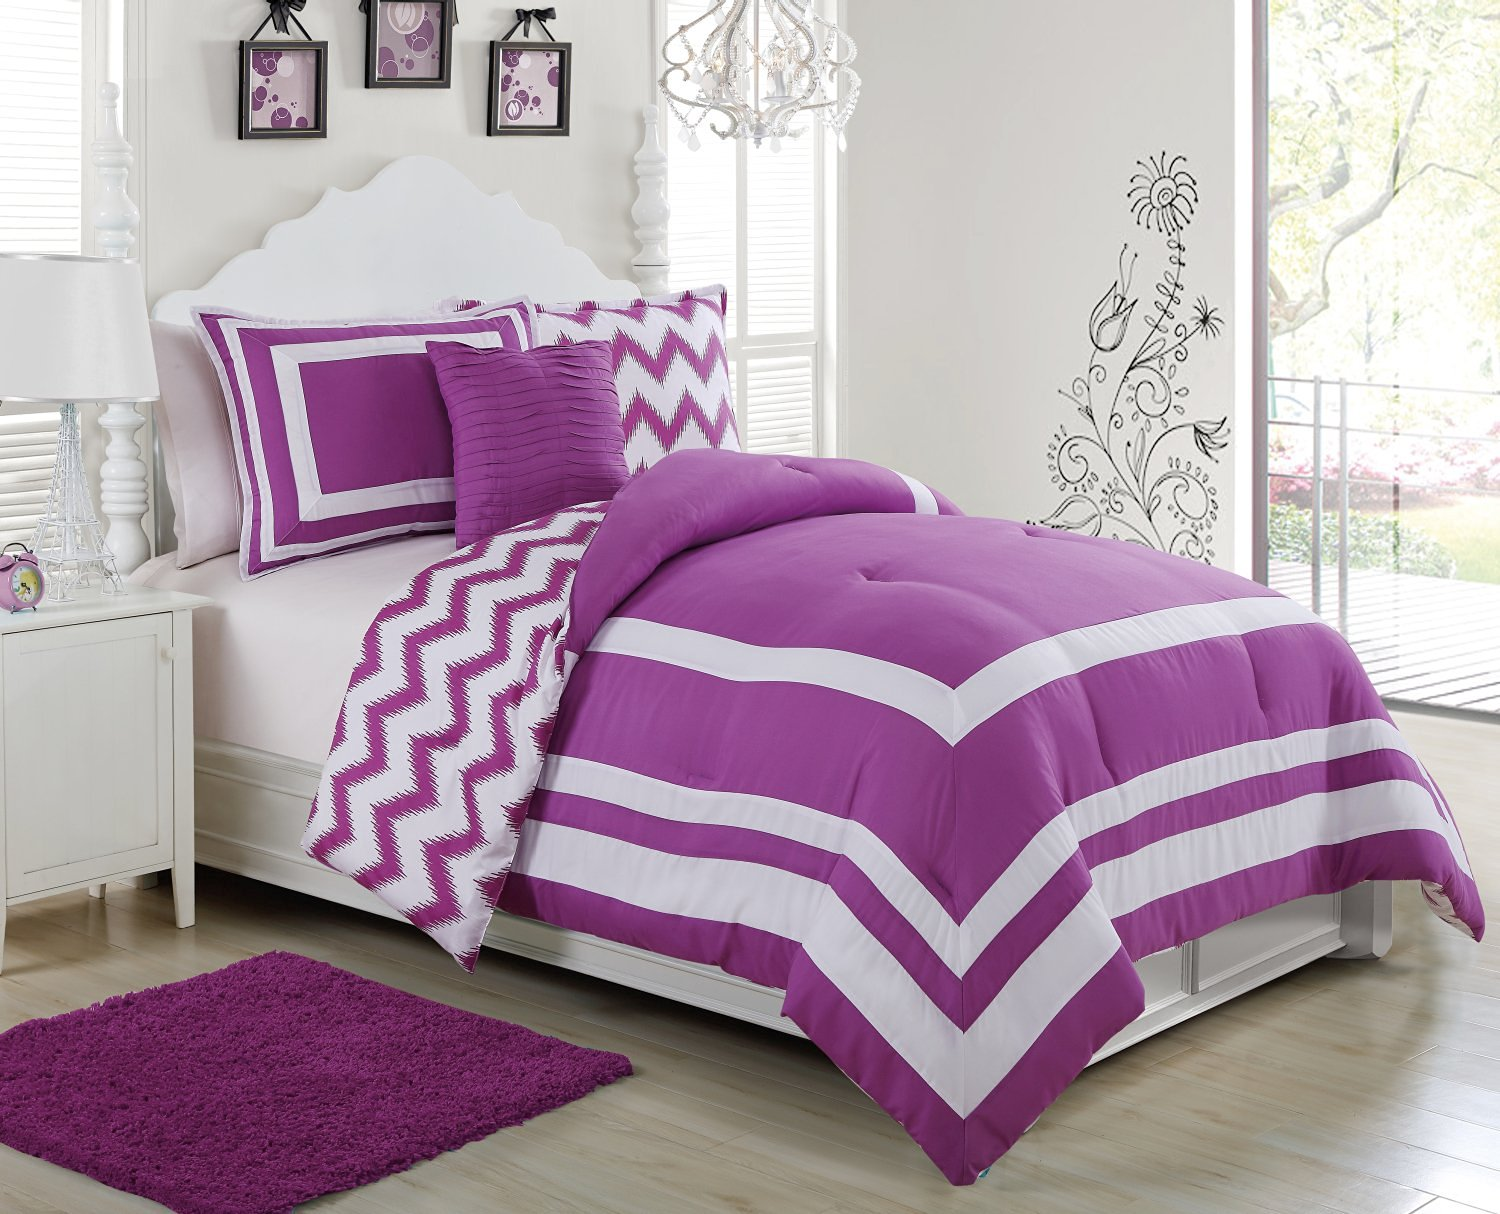 well sleep bedroom sham black ikat gray comfortable for set comforters frame full on also cyushion and comforter dark with as neckroll grey having bed pattern astonishing